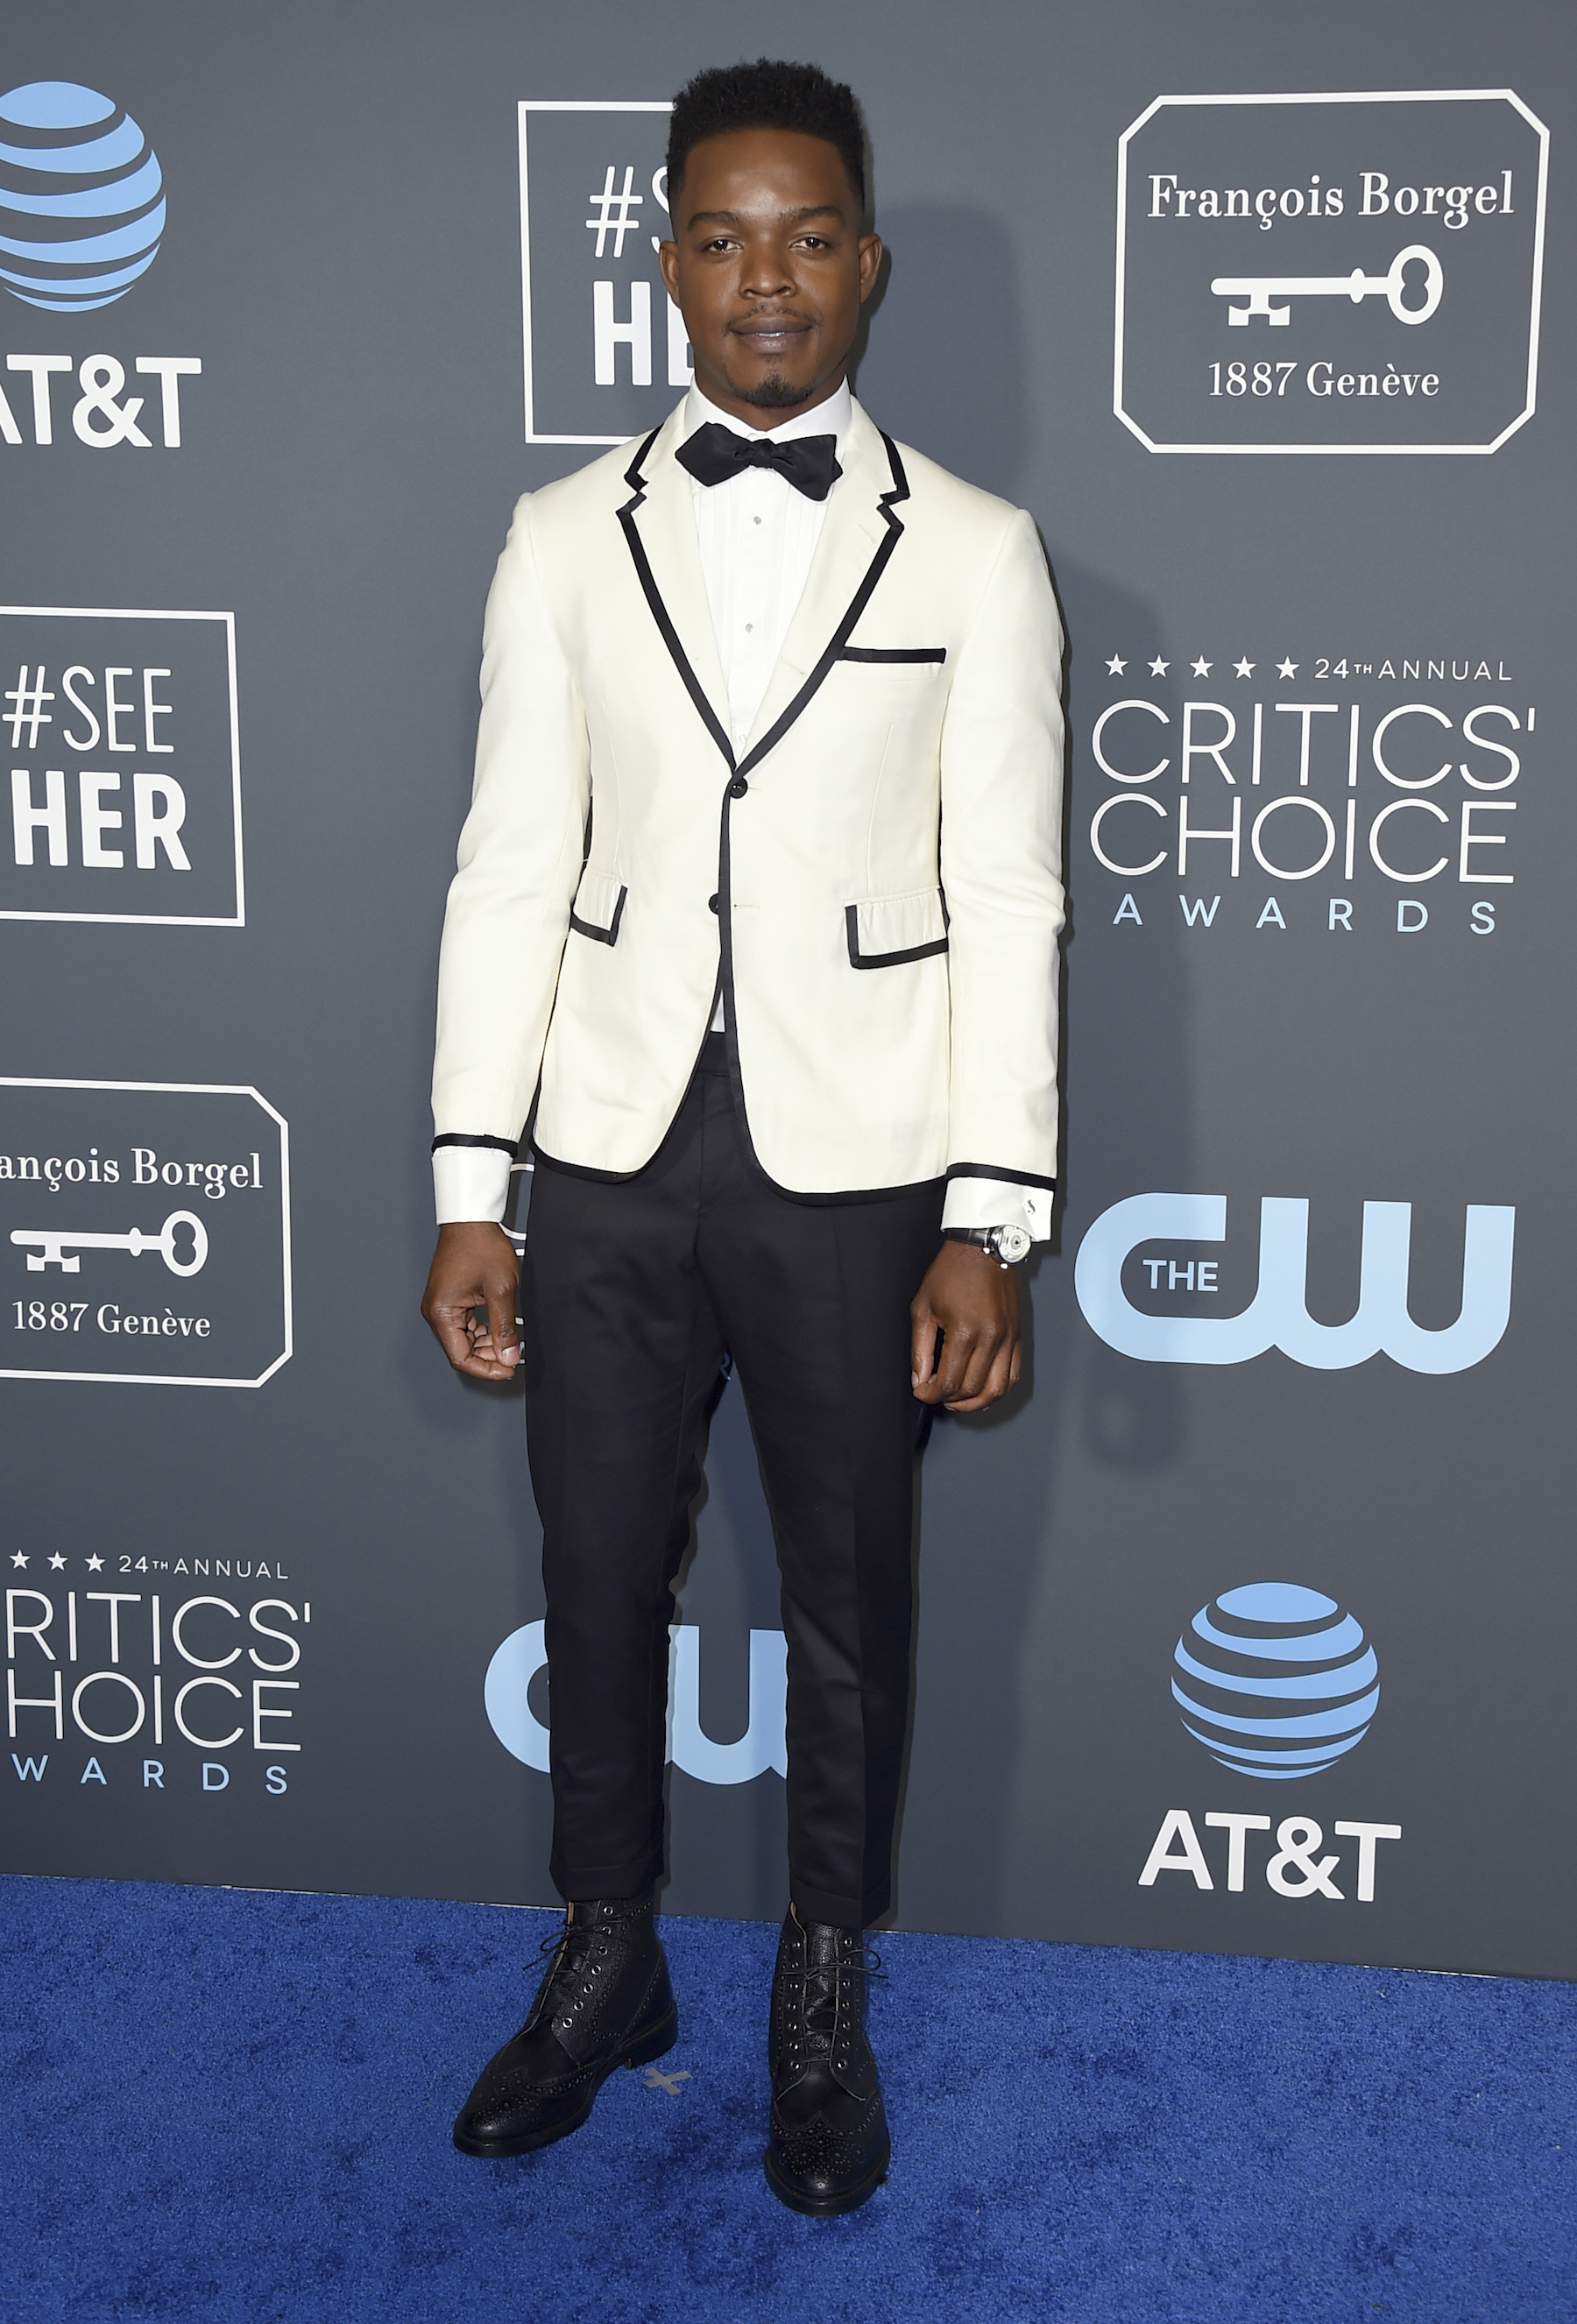 <div class='meta'><div class='origin-logo' data-origin='AP'></div><span class='caption-text' data-credit='Jordan Strauss/Invision/AP'>Stephan James arrives at the 24th annual Critics' Choice Awards on Sunday, Jan. 13, 2019, at the Barker Hangar in Santa Monica, Calif.</span></div>